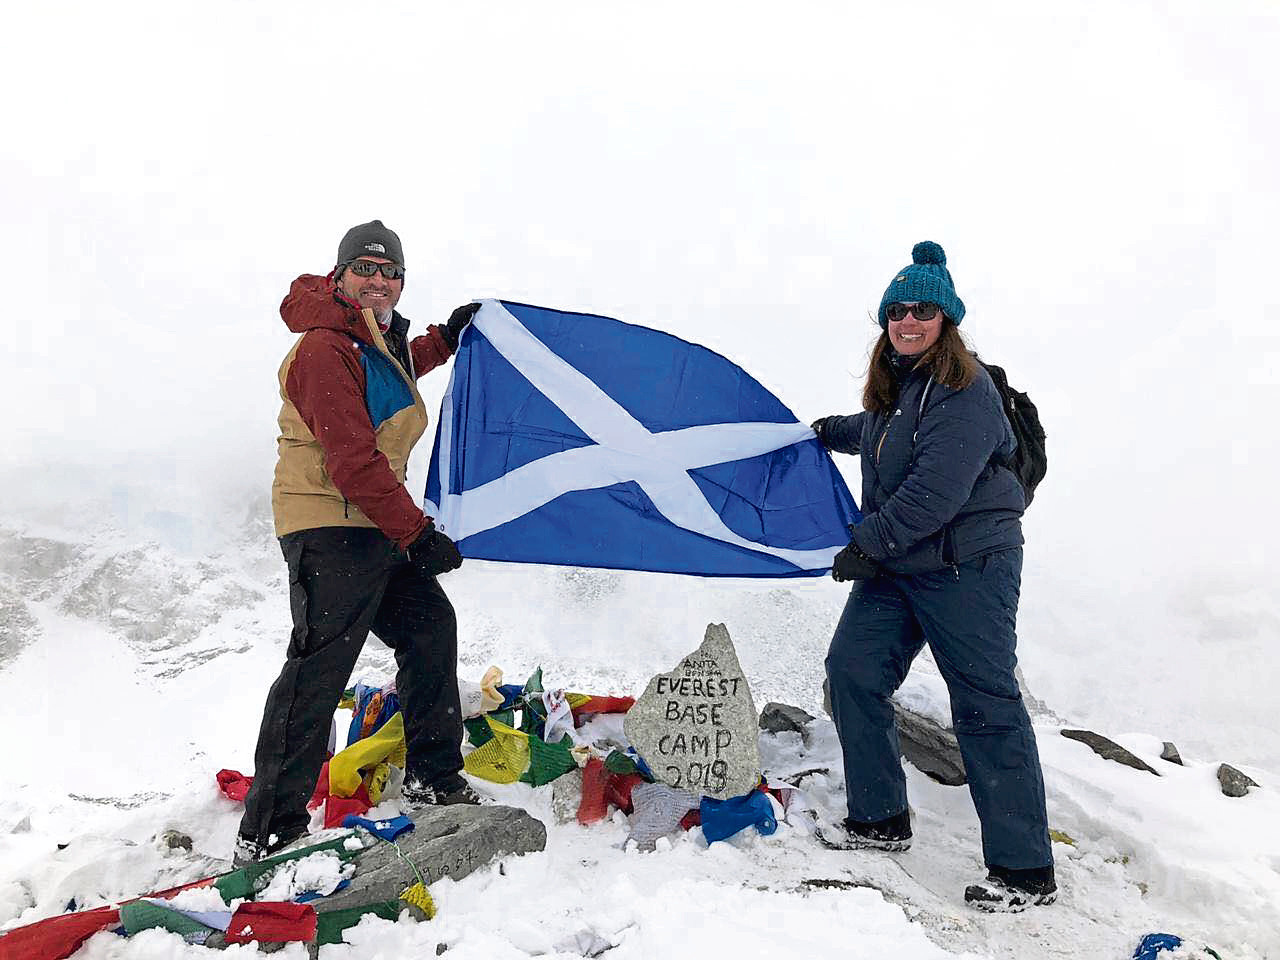 Alison Muirhead climbs Everest base camp and raises £2,600 for Alzheimer Scotland, in honour of her mum who has dementia.